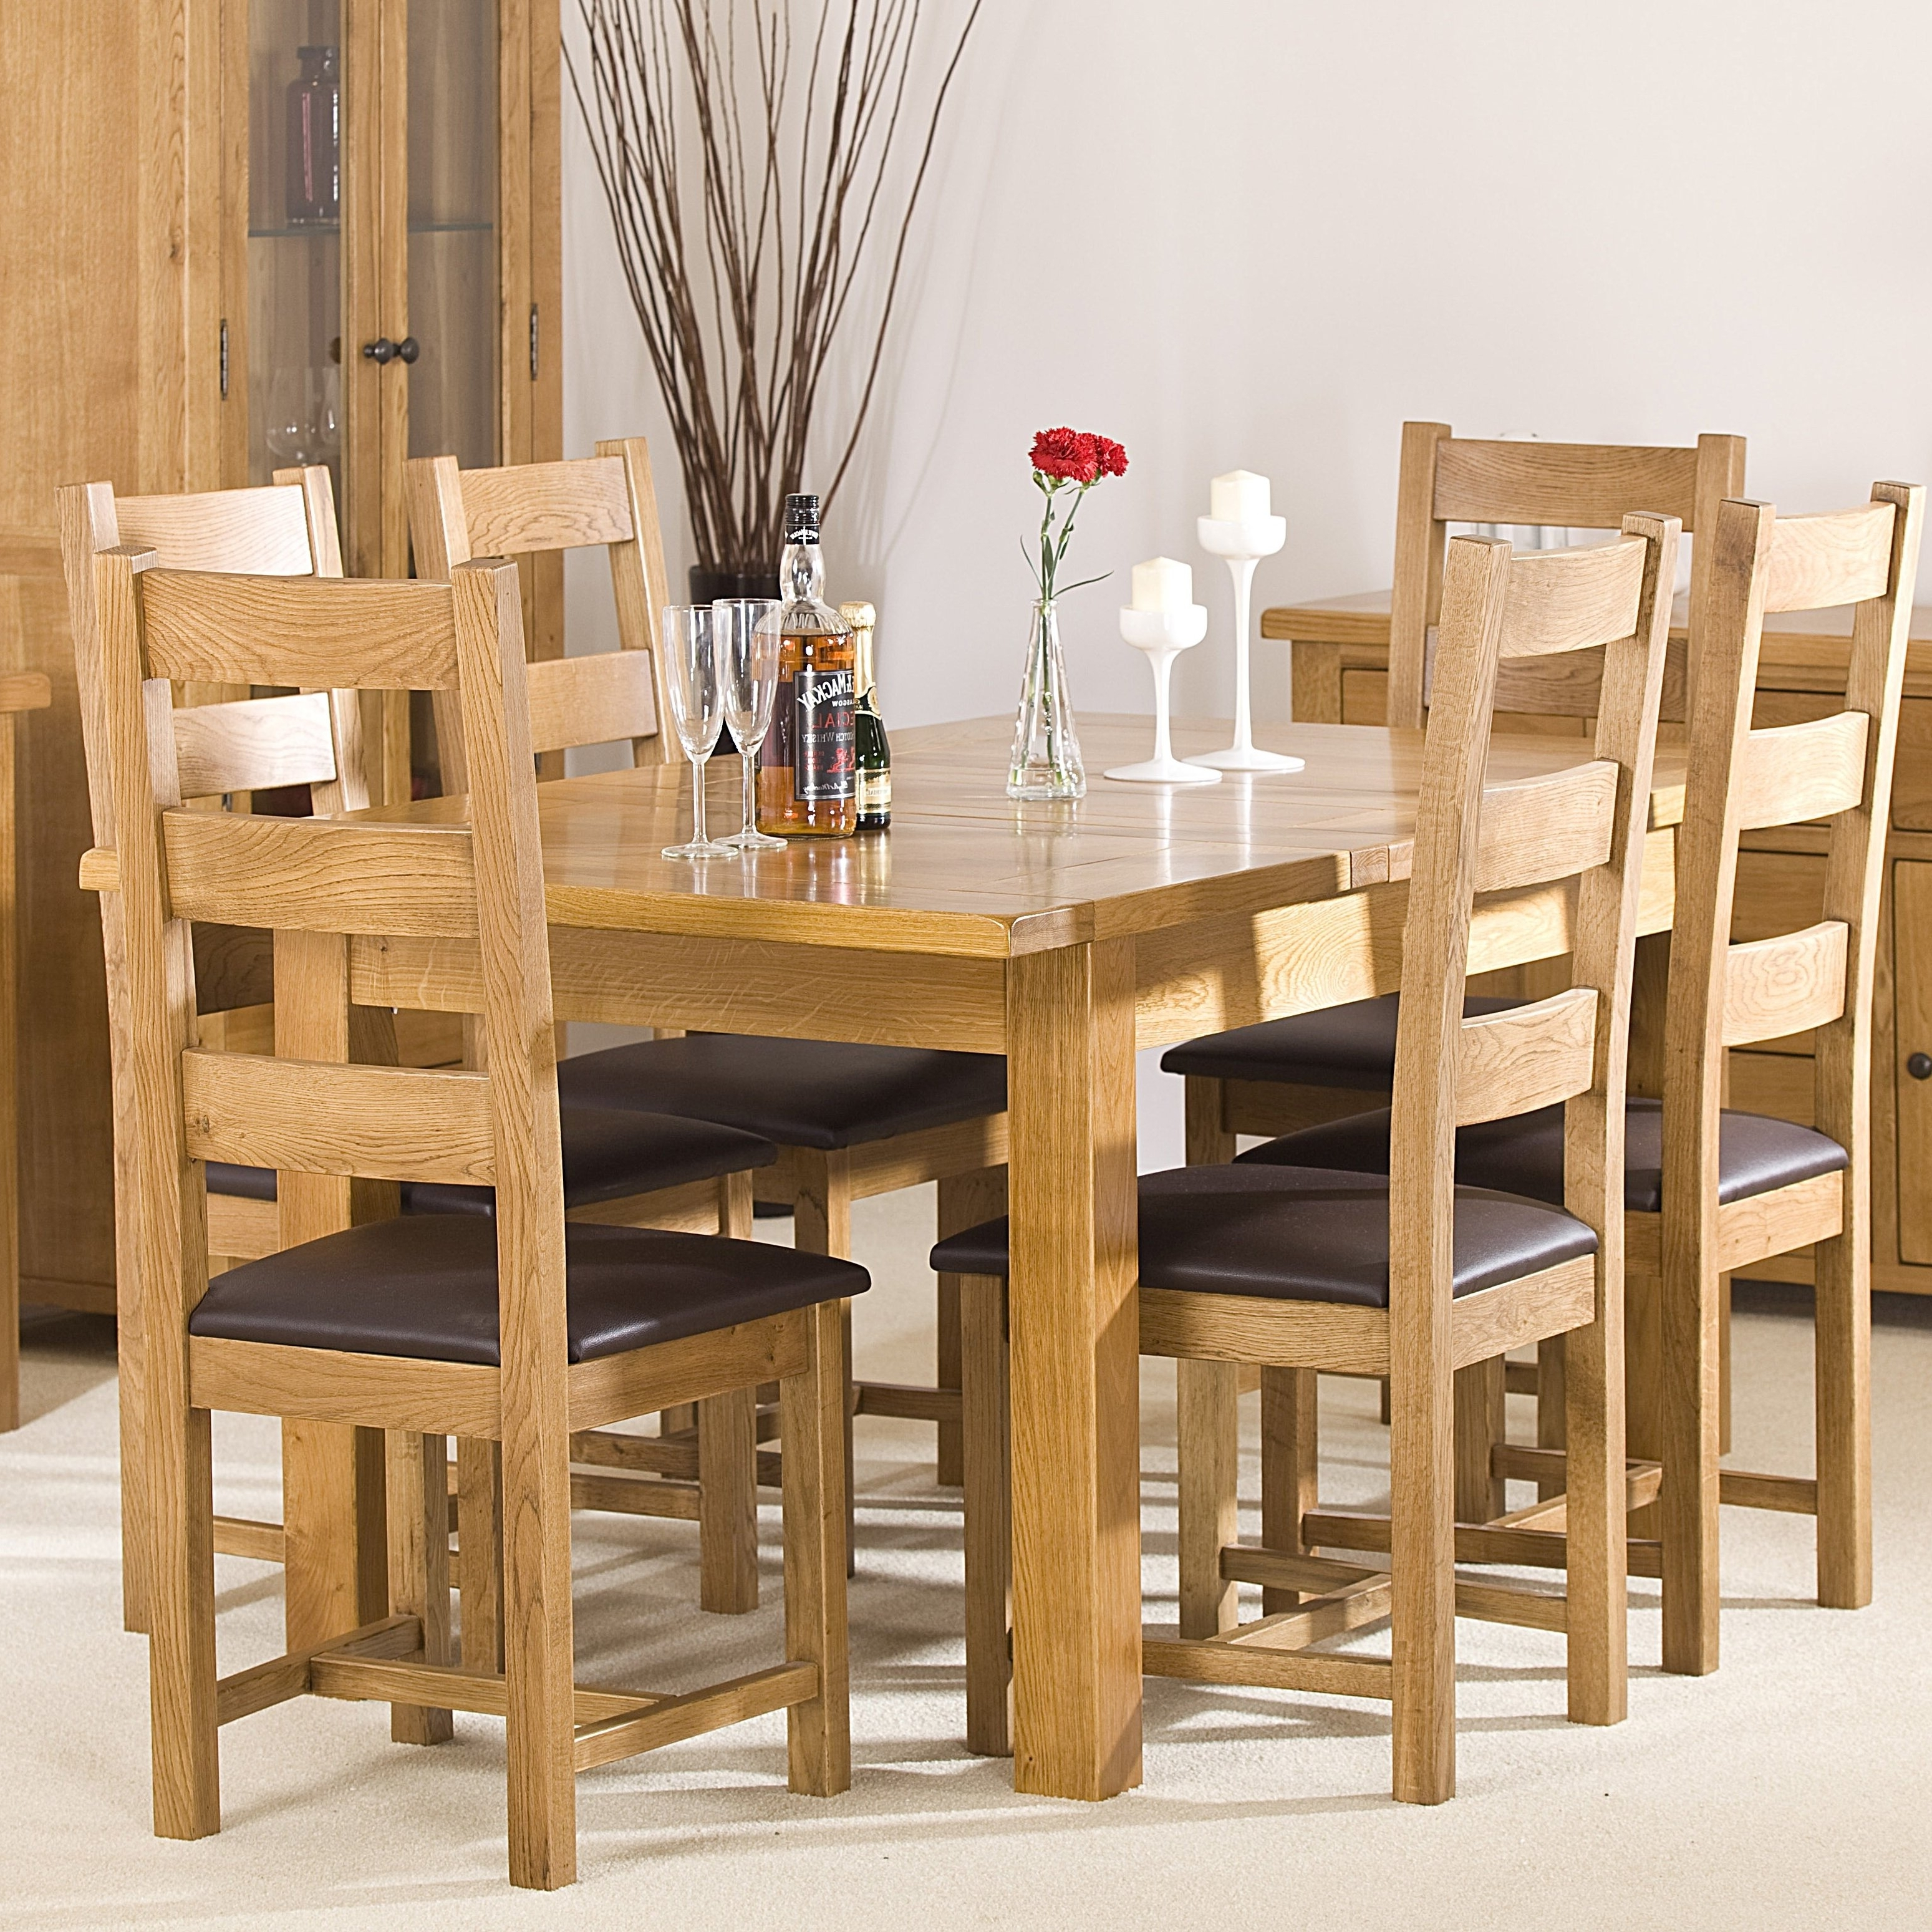 Well Known Extendable Dining Tables With 6 Chairs Inside Homestead Living Extendable Dining Table And 6 Chairs (View 23 of 25)